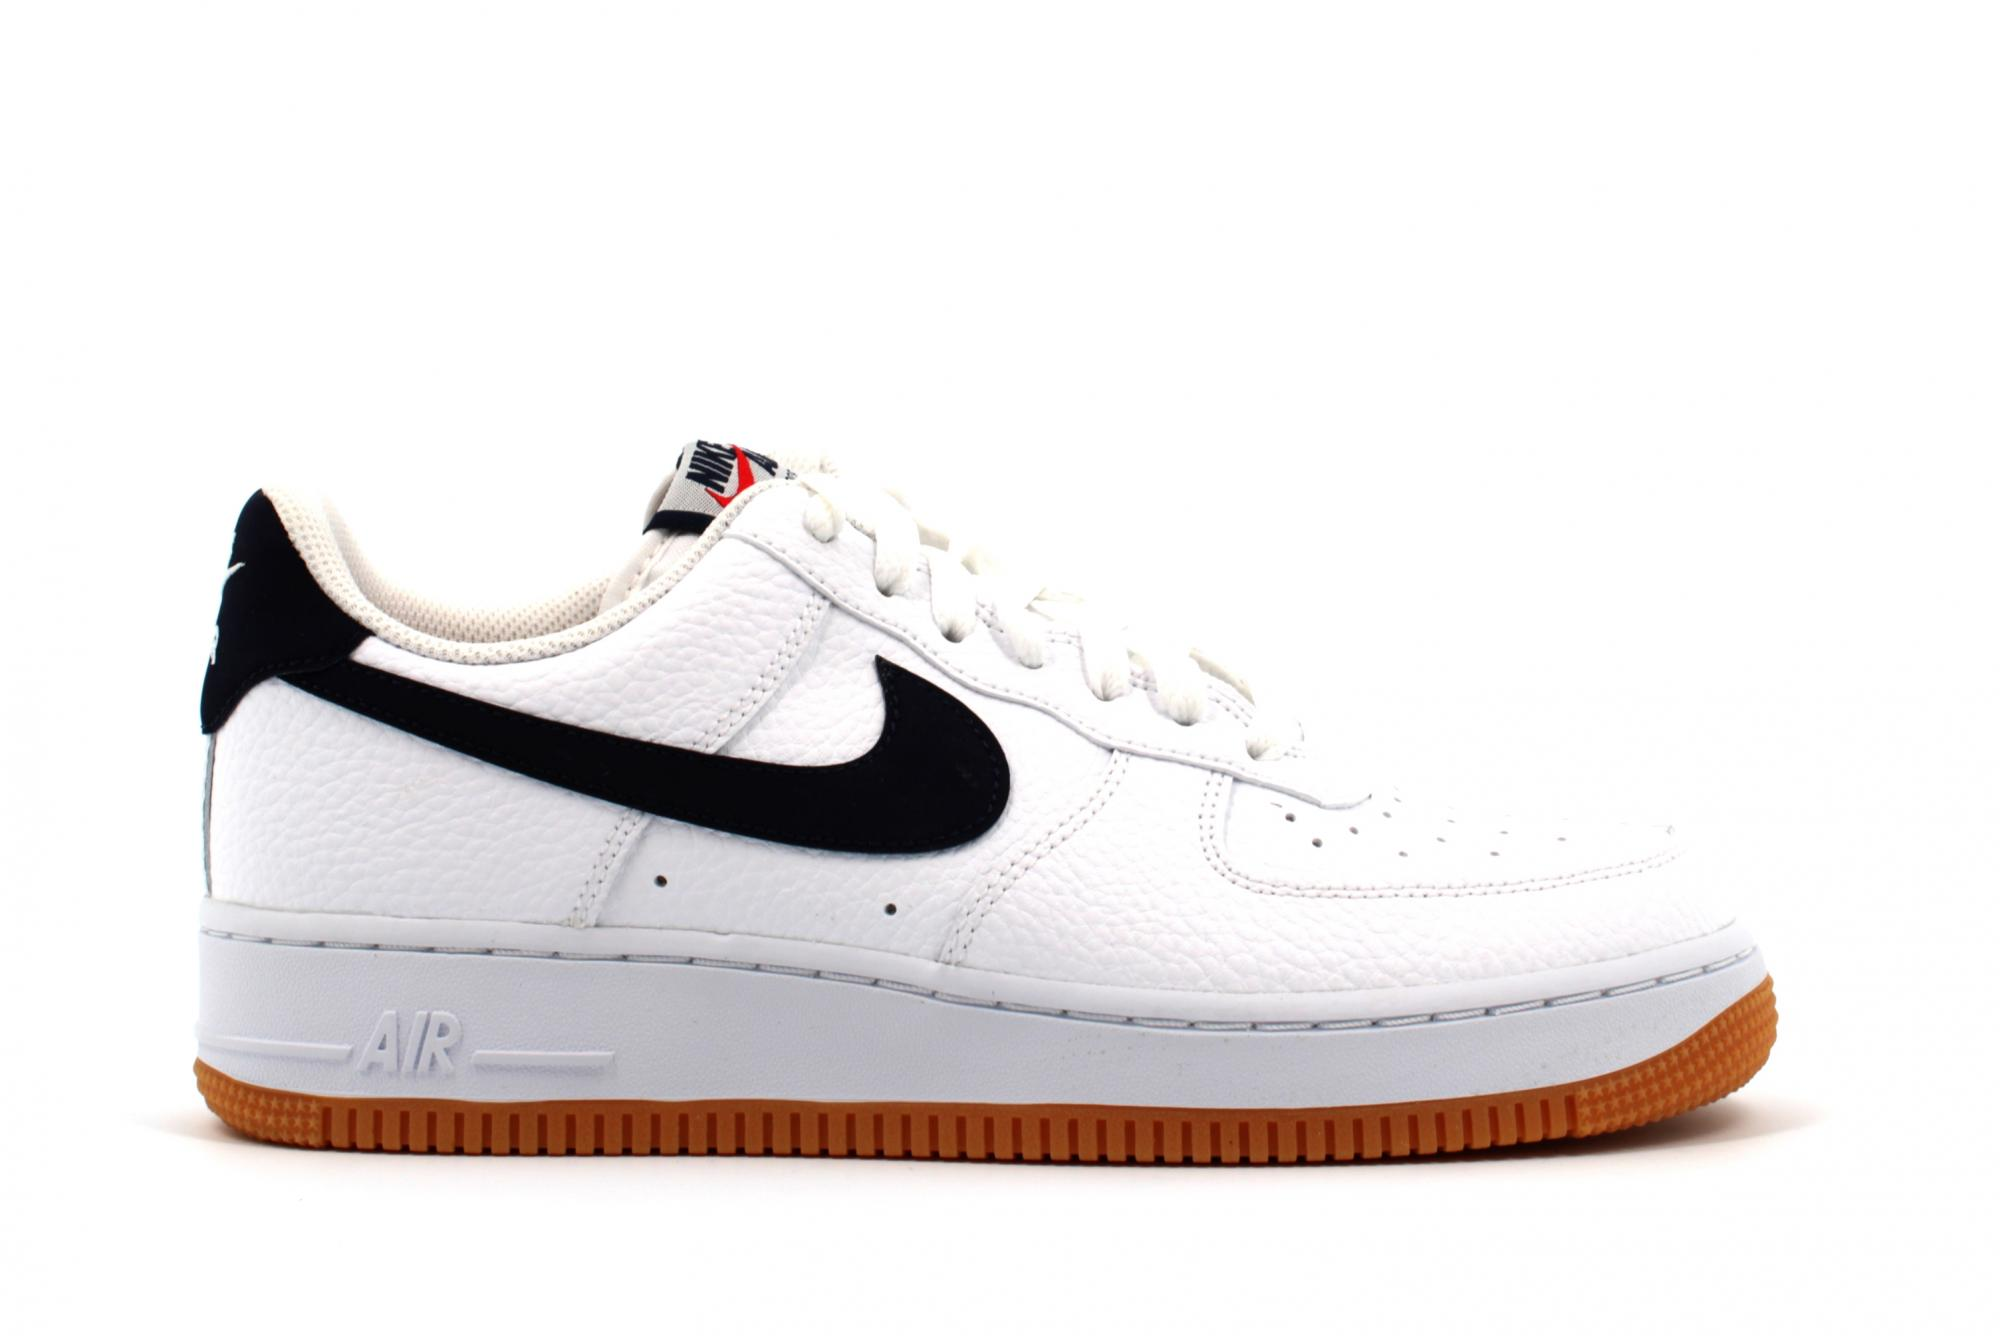 Nike Air Force 1 High Blanc-Orange Women/'s Trainers Limited Stock Toutes Tailles